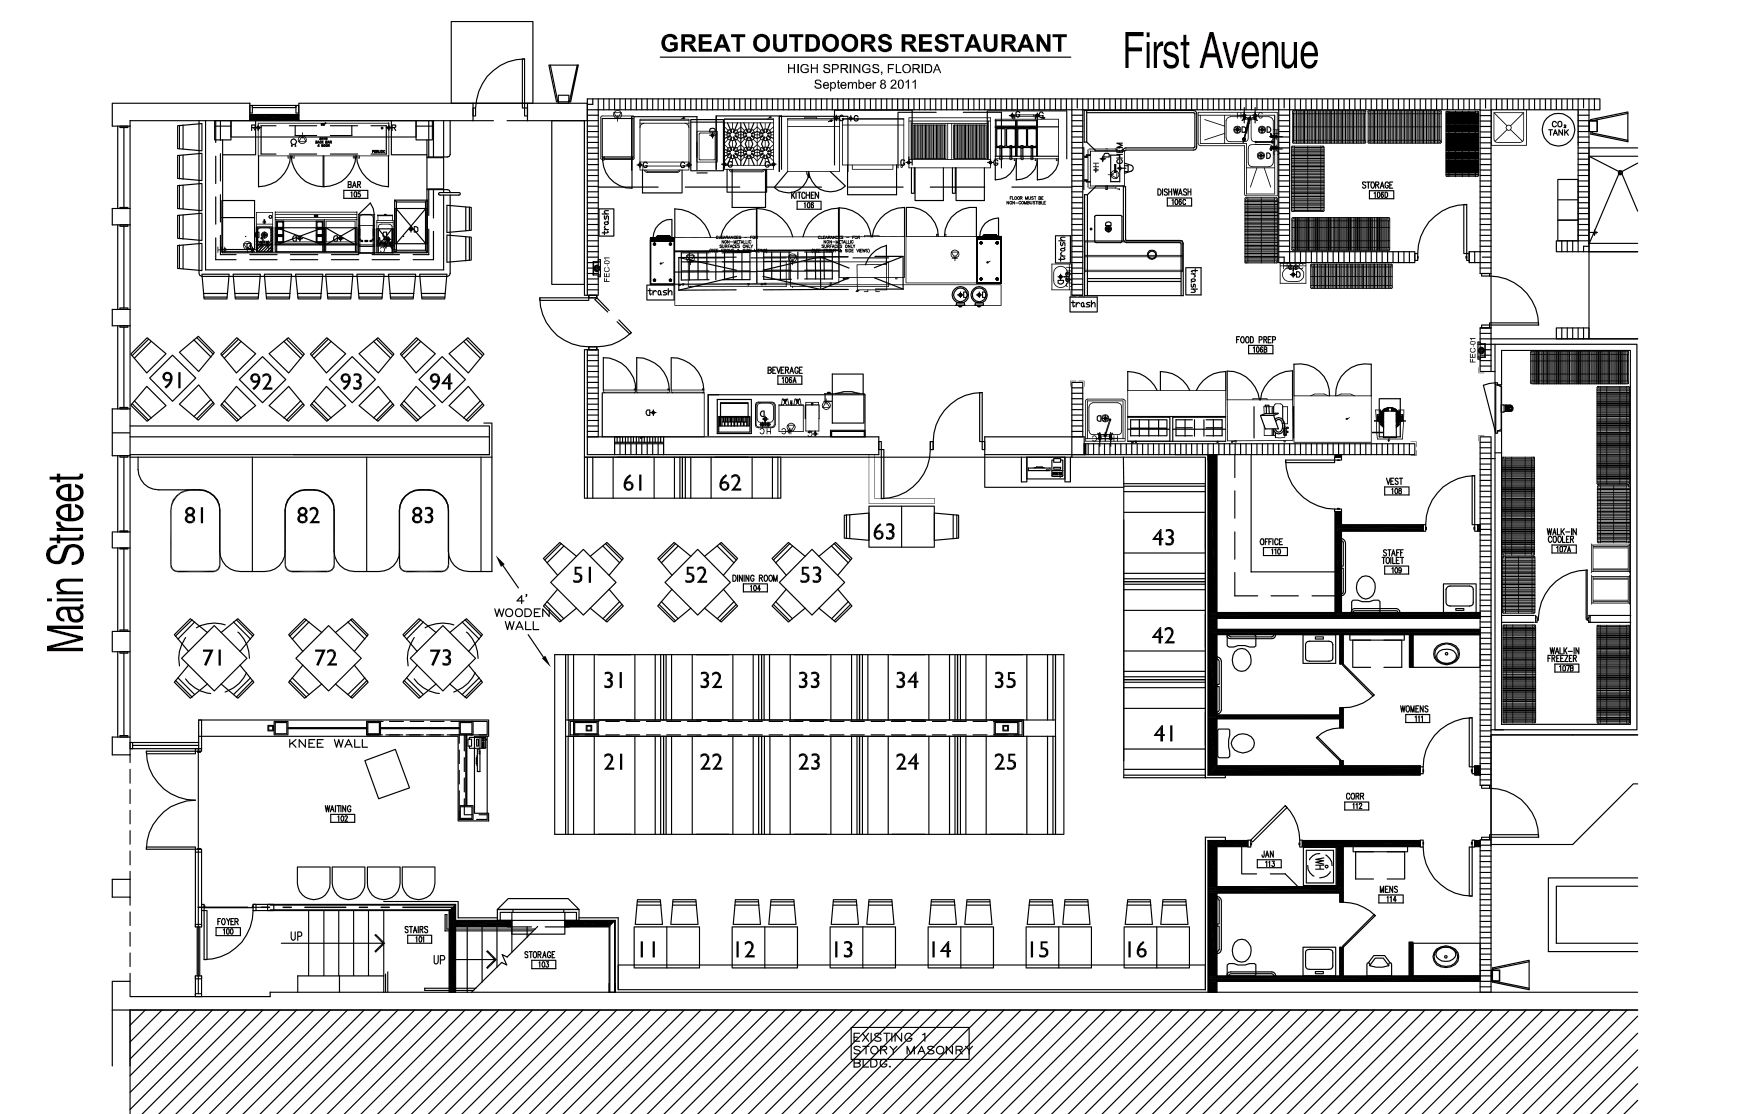 Restaurant Interior Design Floor Plan